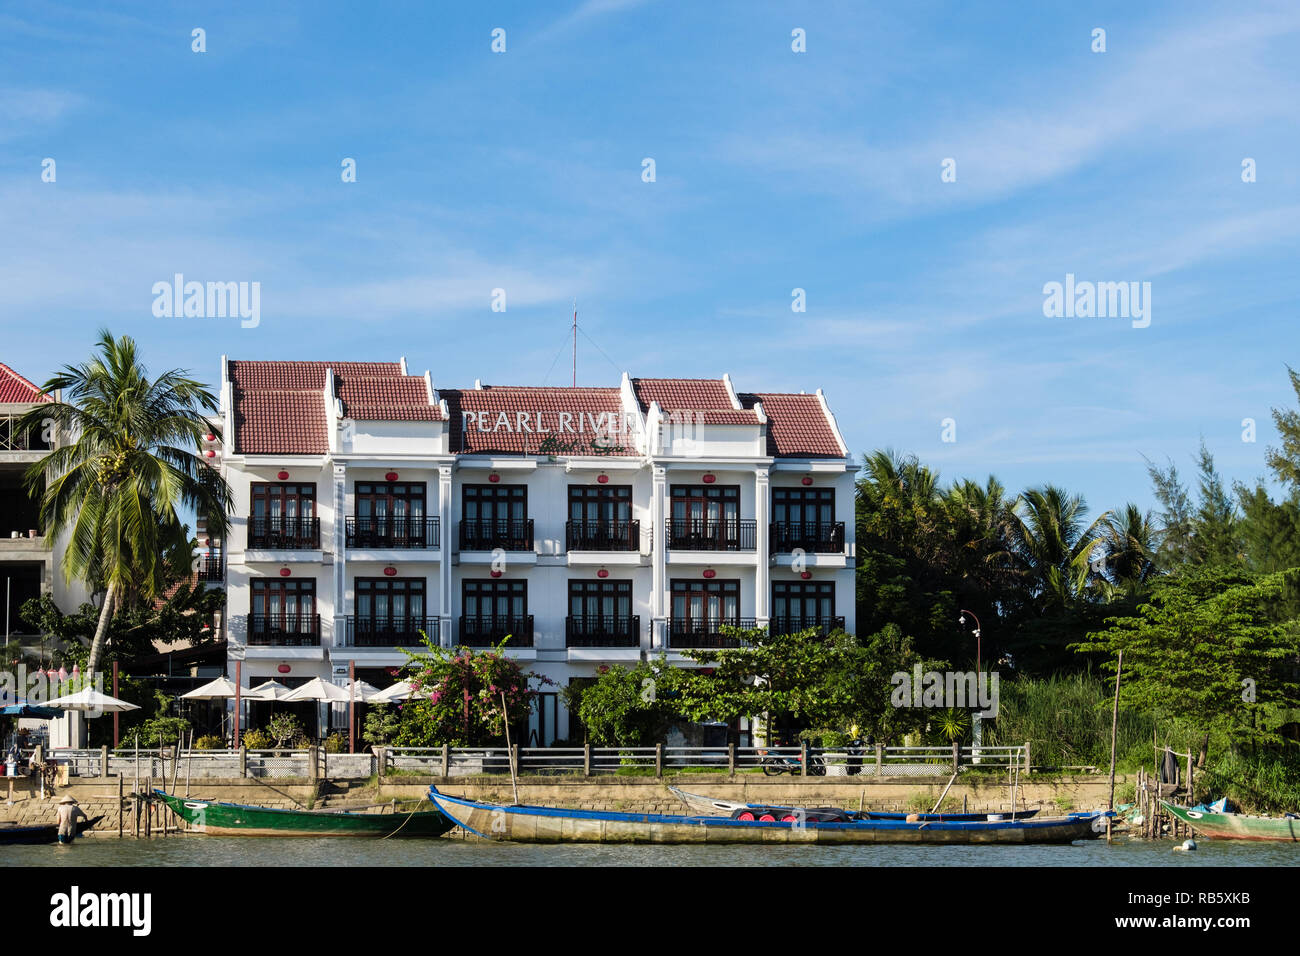 Front view of modern riverside Pearl River hotel and spa on Thu Bon River. Hoi An, Quang Nam Province, Vietnam, Asia.  Seen from the river - Stock Image